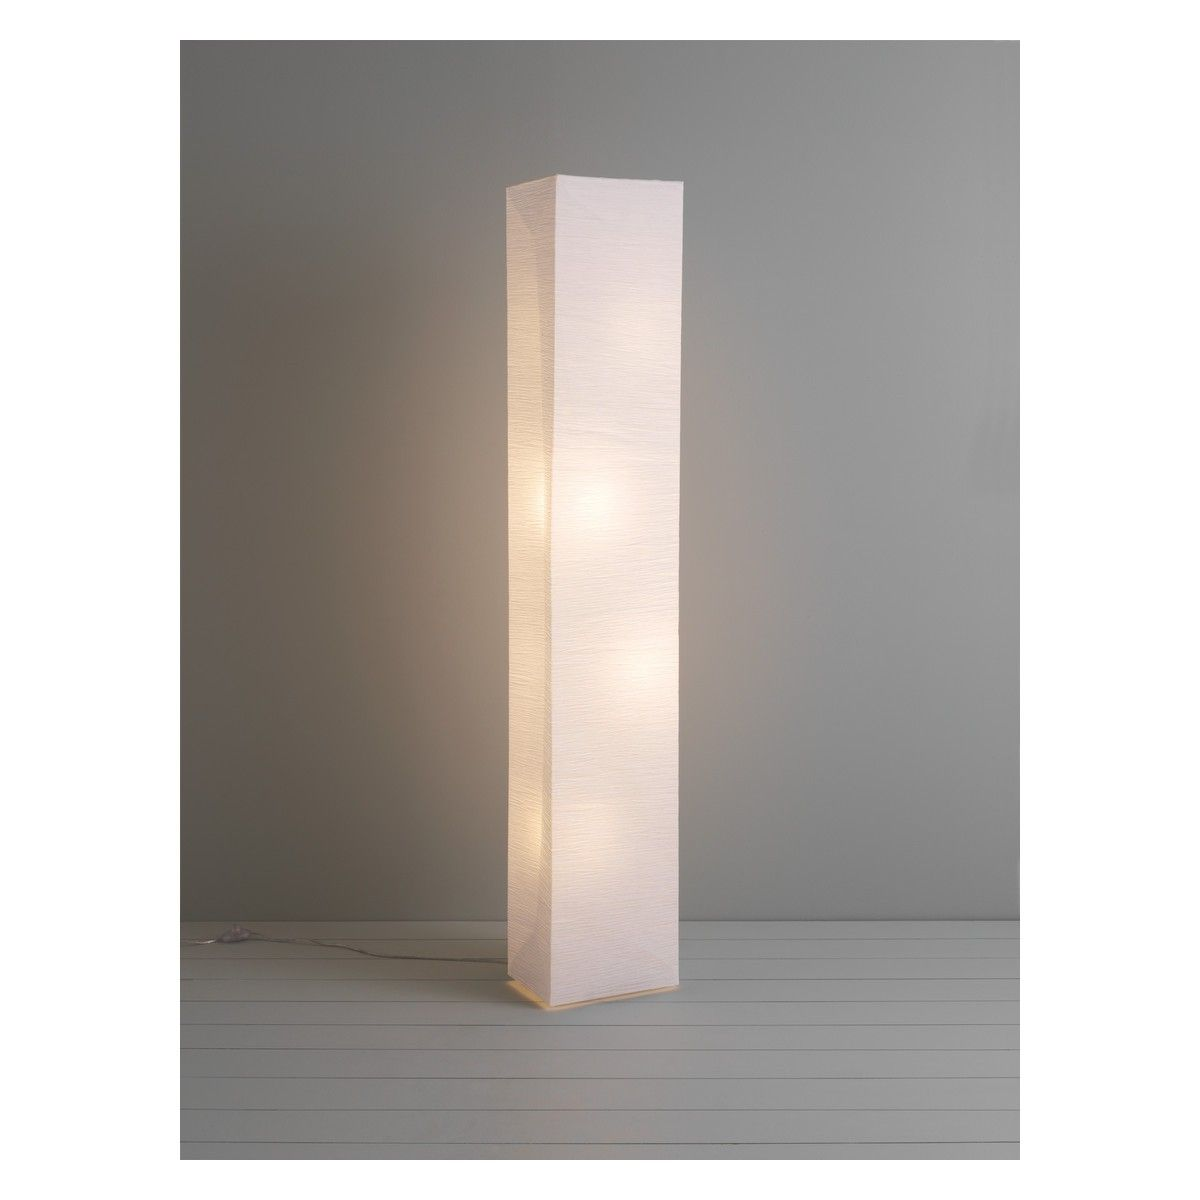 rice lamps foter paper floor explore lamp